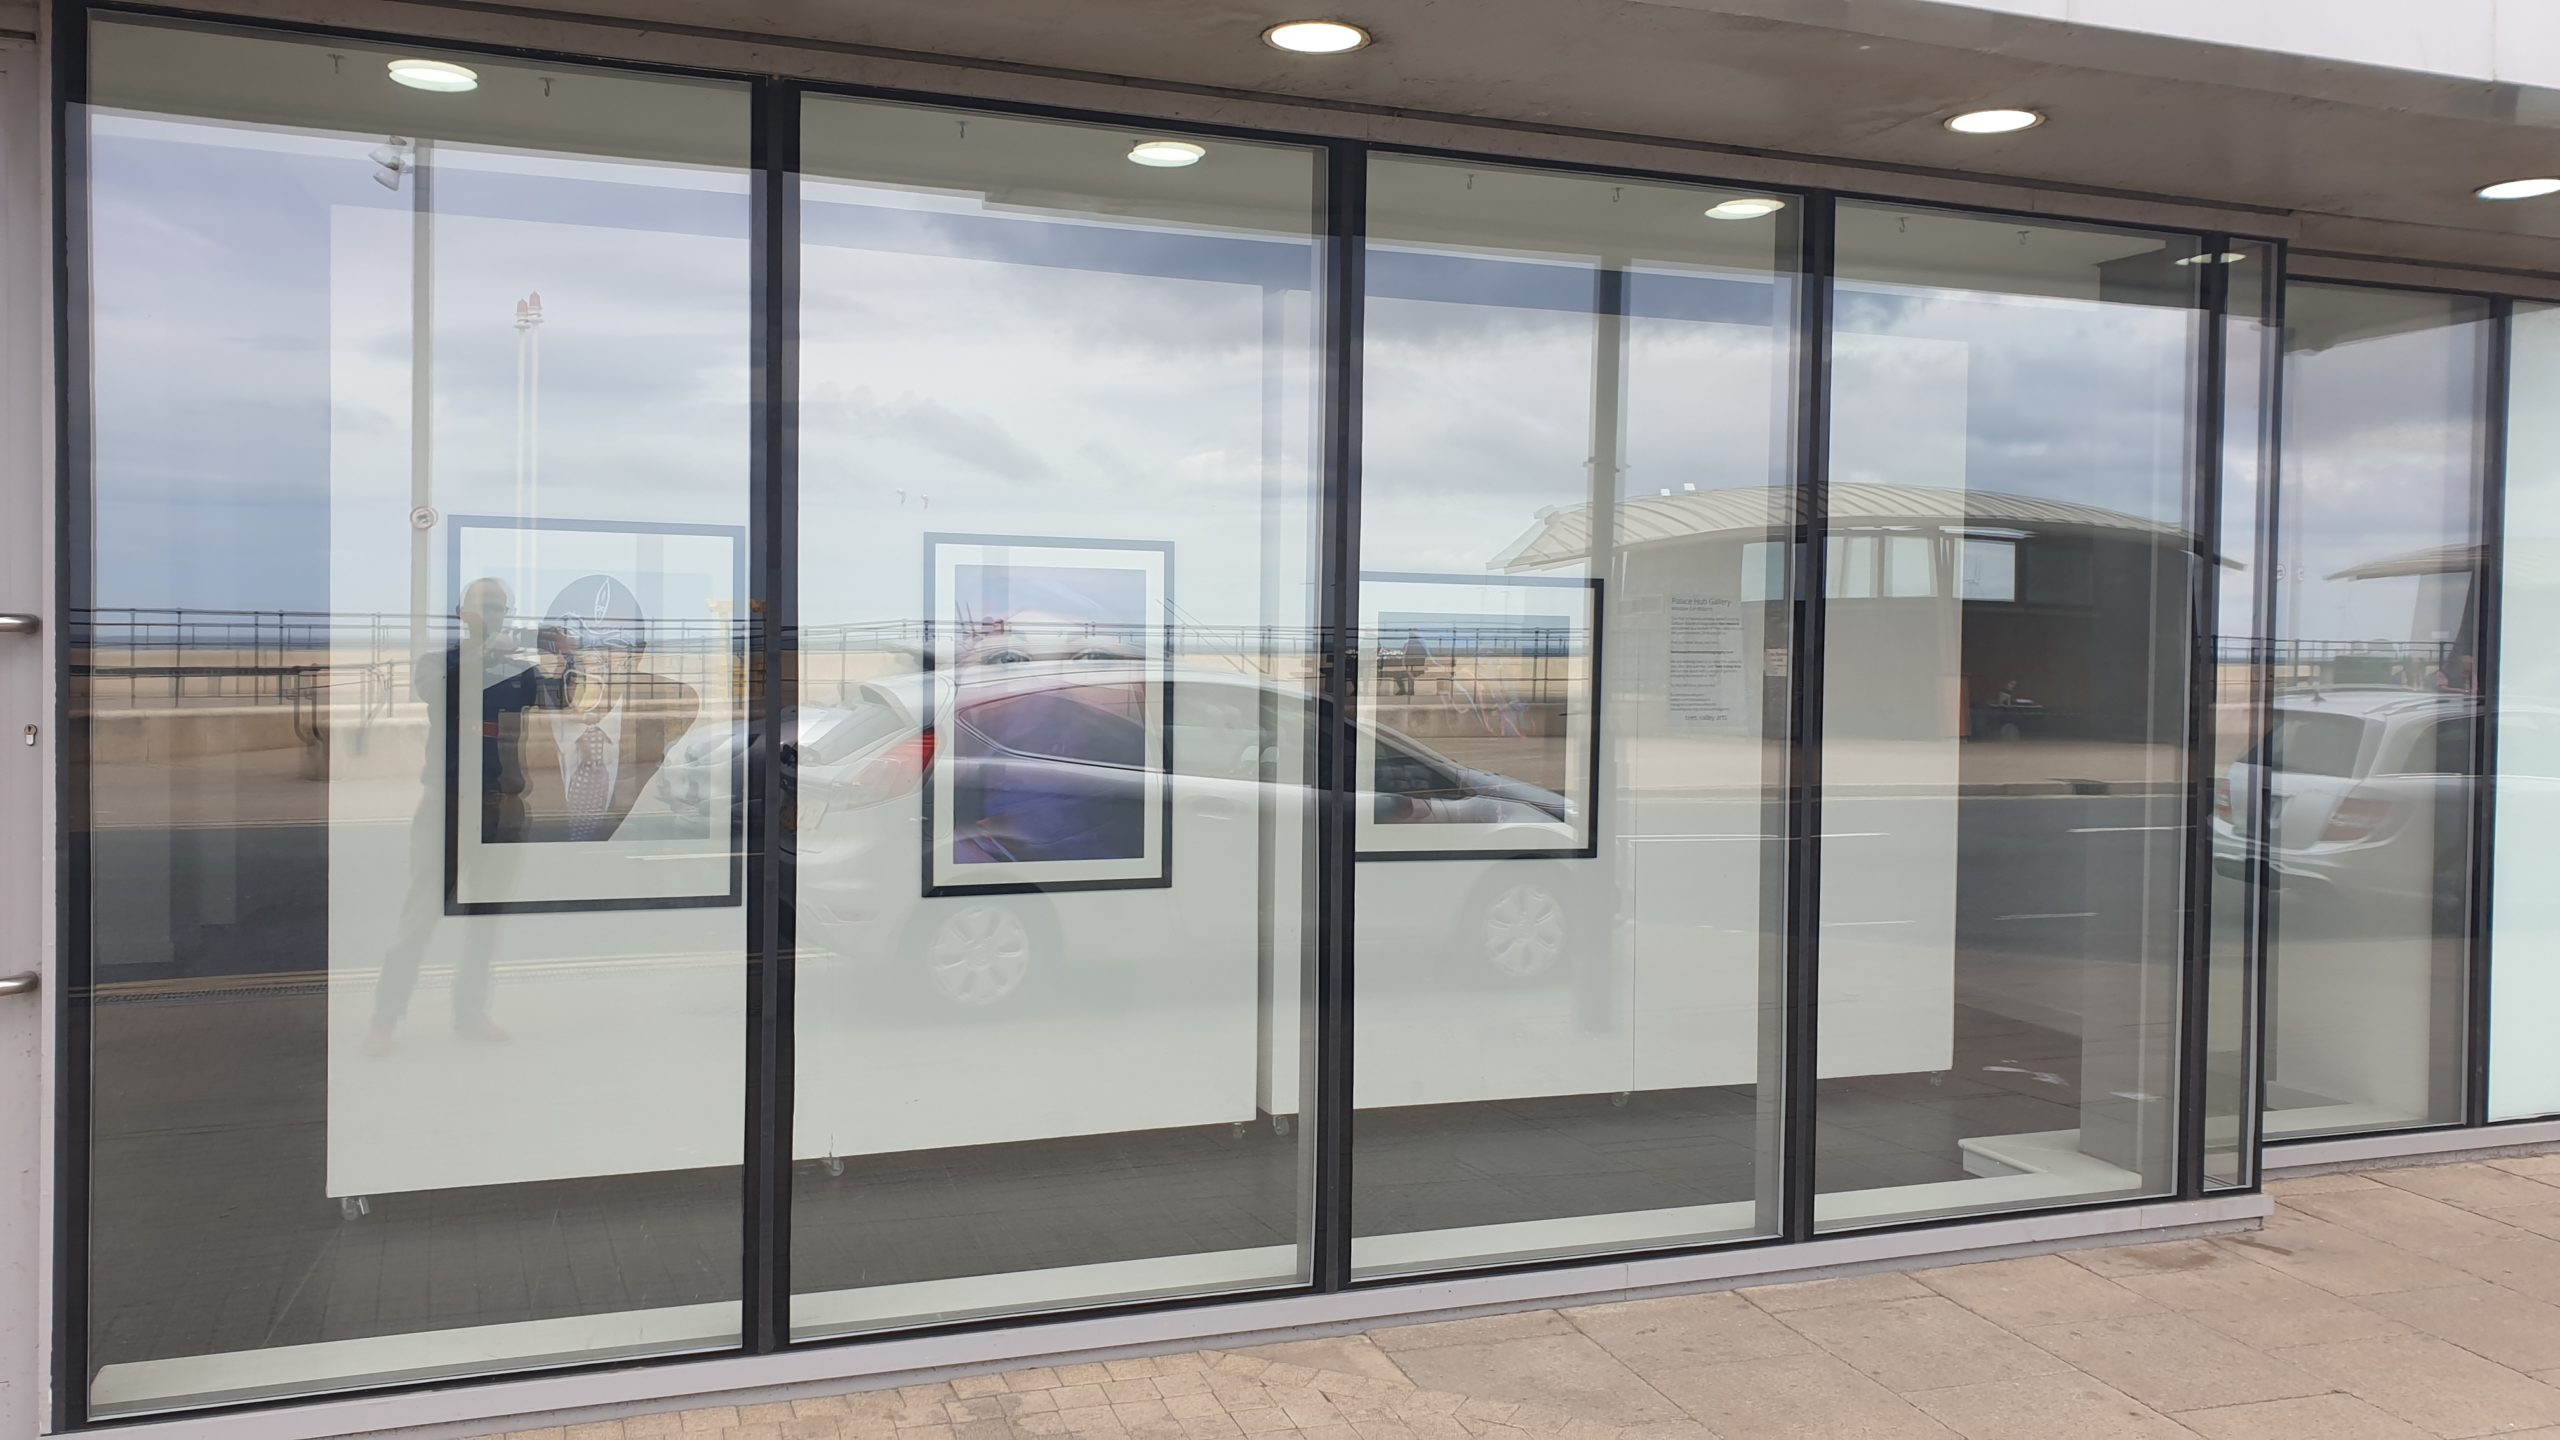 Palace Hub Gallery Window Exhibition by Kev Howard